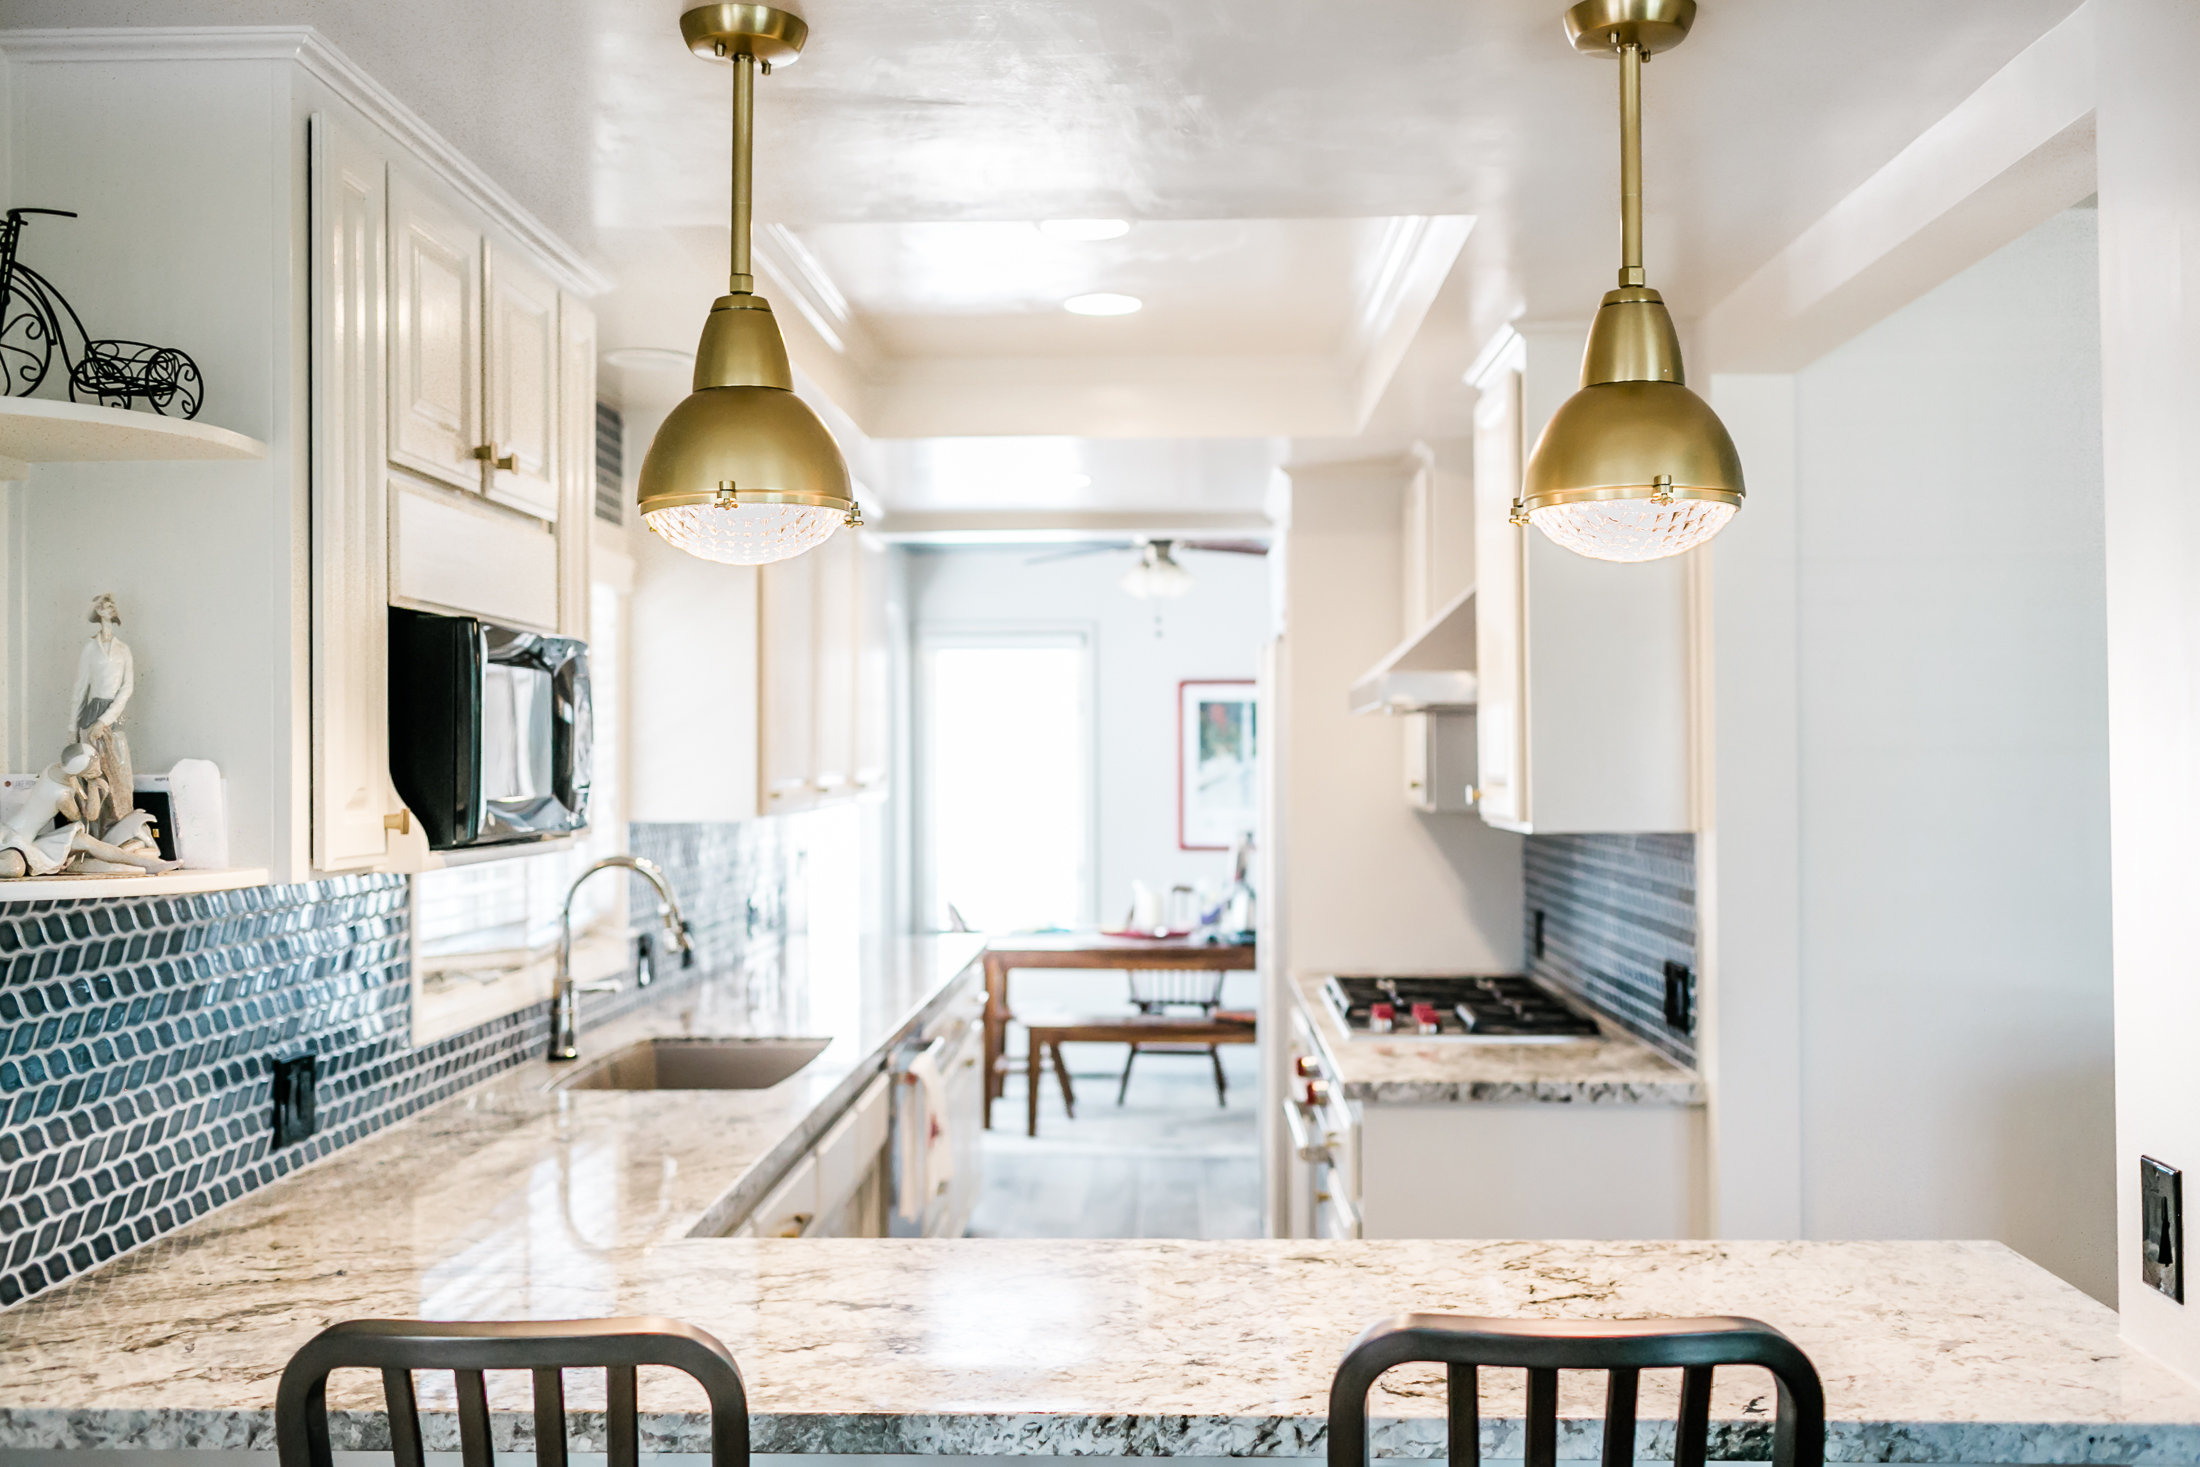 kitchen remodel, bowie interior designer, washington dc interior designer, kitchen remodel